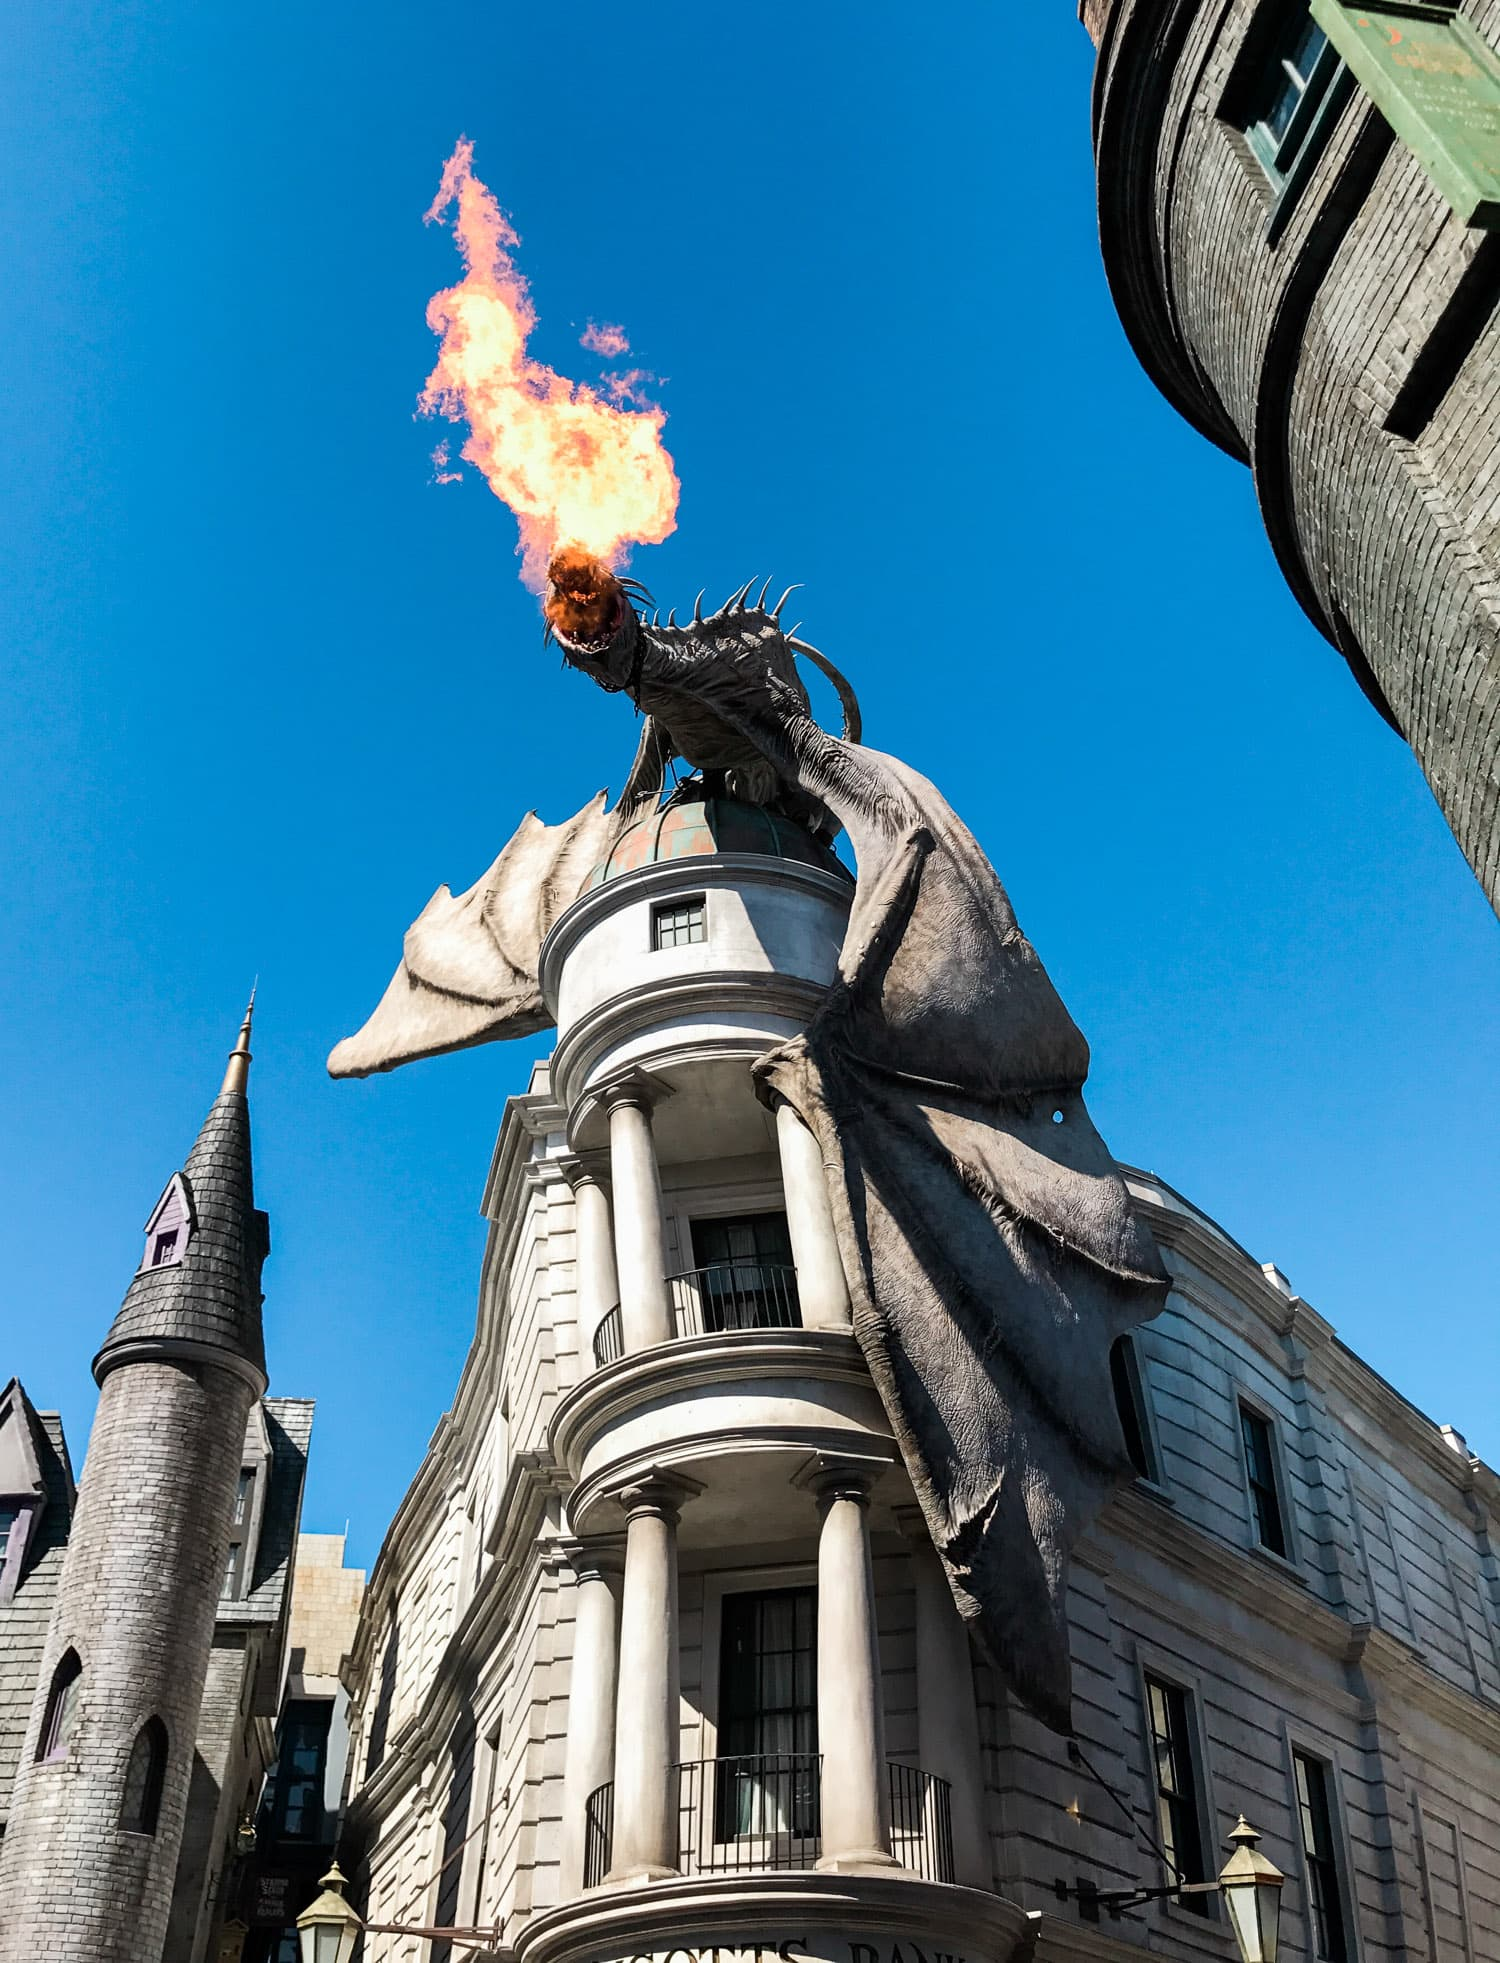 The Wizarding World of Harry Potter at Universal Orlando Islands of Adventure is just so magical! Planning a trip to Orlando? I've rounded up the top 10 things to do in Orlando, Florida, that are guaranteed to make your trip a success. Whether you're moving to Orlando or just headed in on vacation, you will LOVE this list of fun activities in Orlando by Florida travel blogger Ashley Brooke Nicholas #CORTatHome sponsored by CORT Furniture | affordable travel tips, orlando vacation tips, vacation